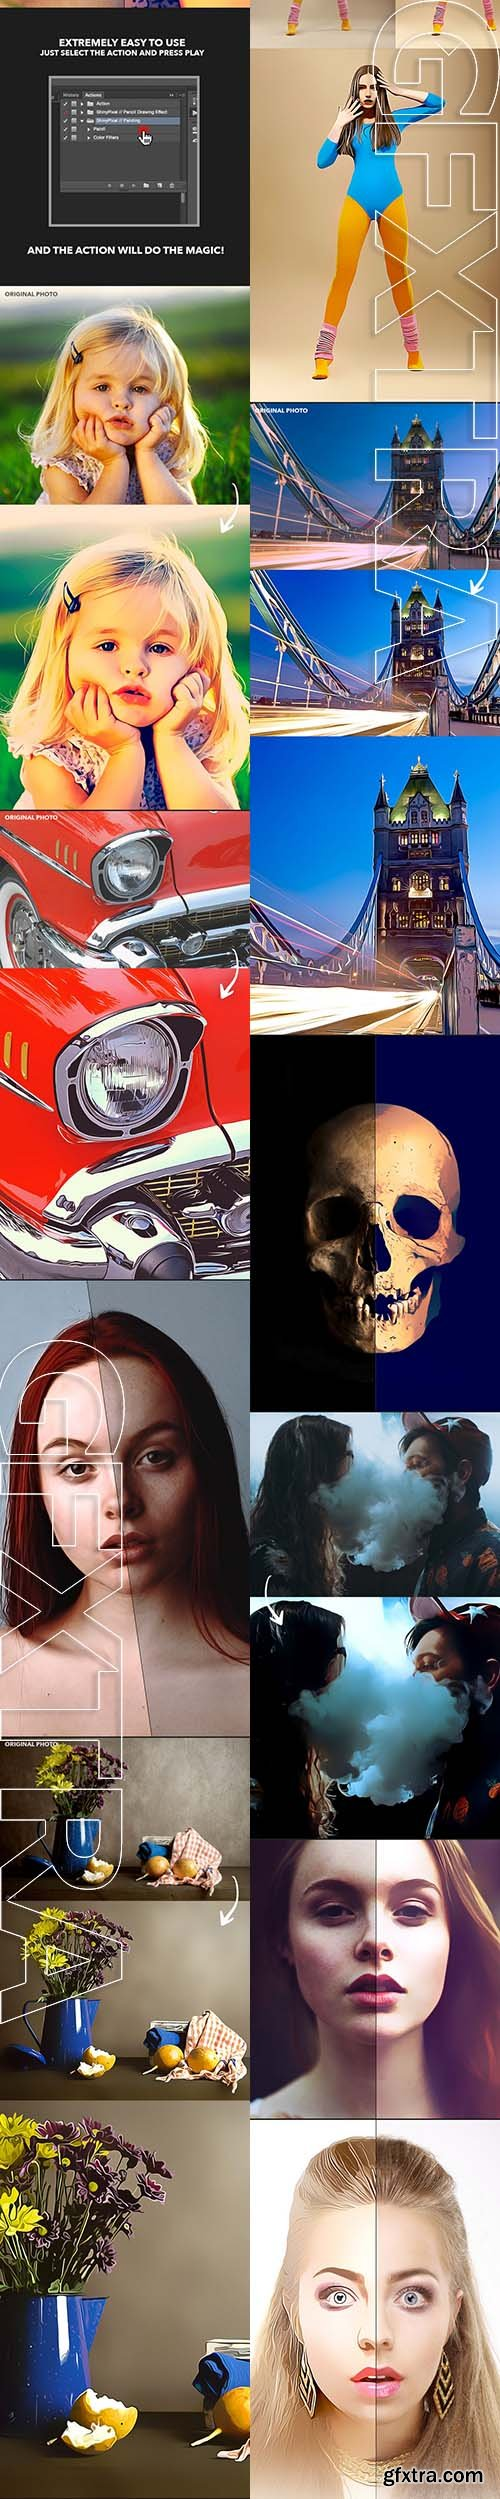 Smart Painting Effect - Photoshop Action - GraphicRiver 11759710